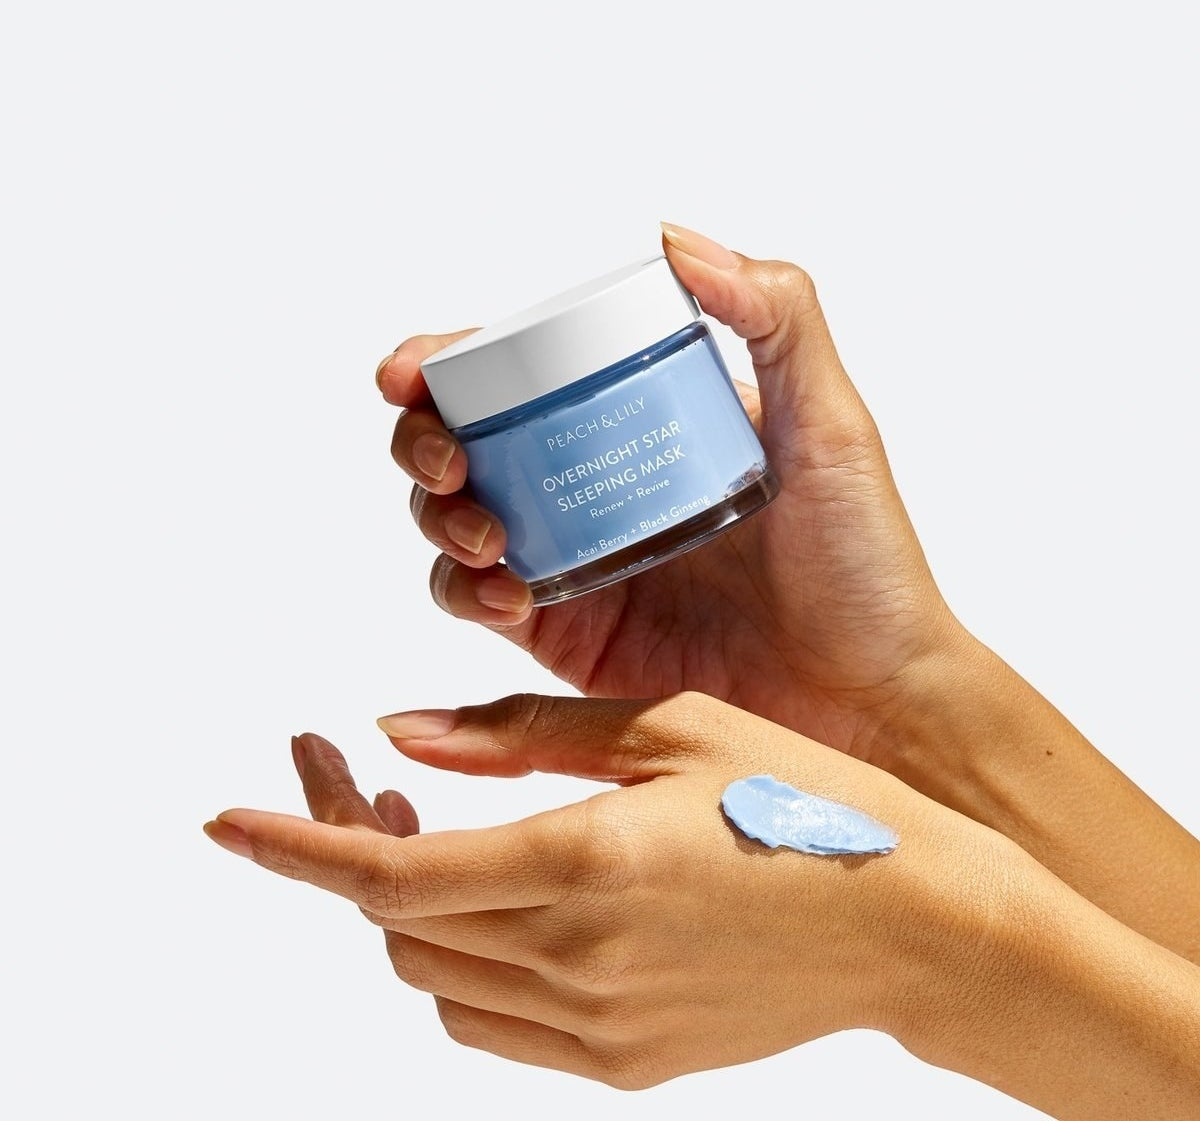 the tub and a swatch of the cream on a hand, showing its blue color and thick smooth texture